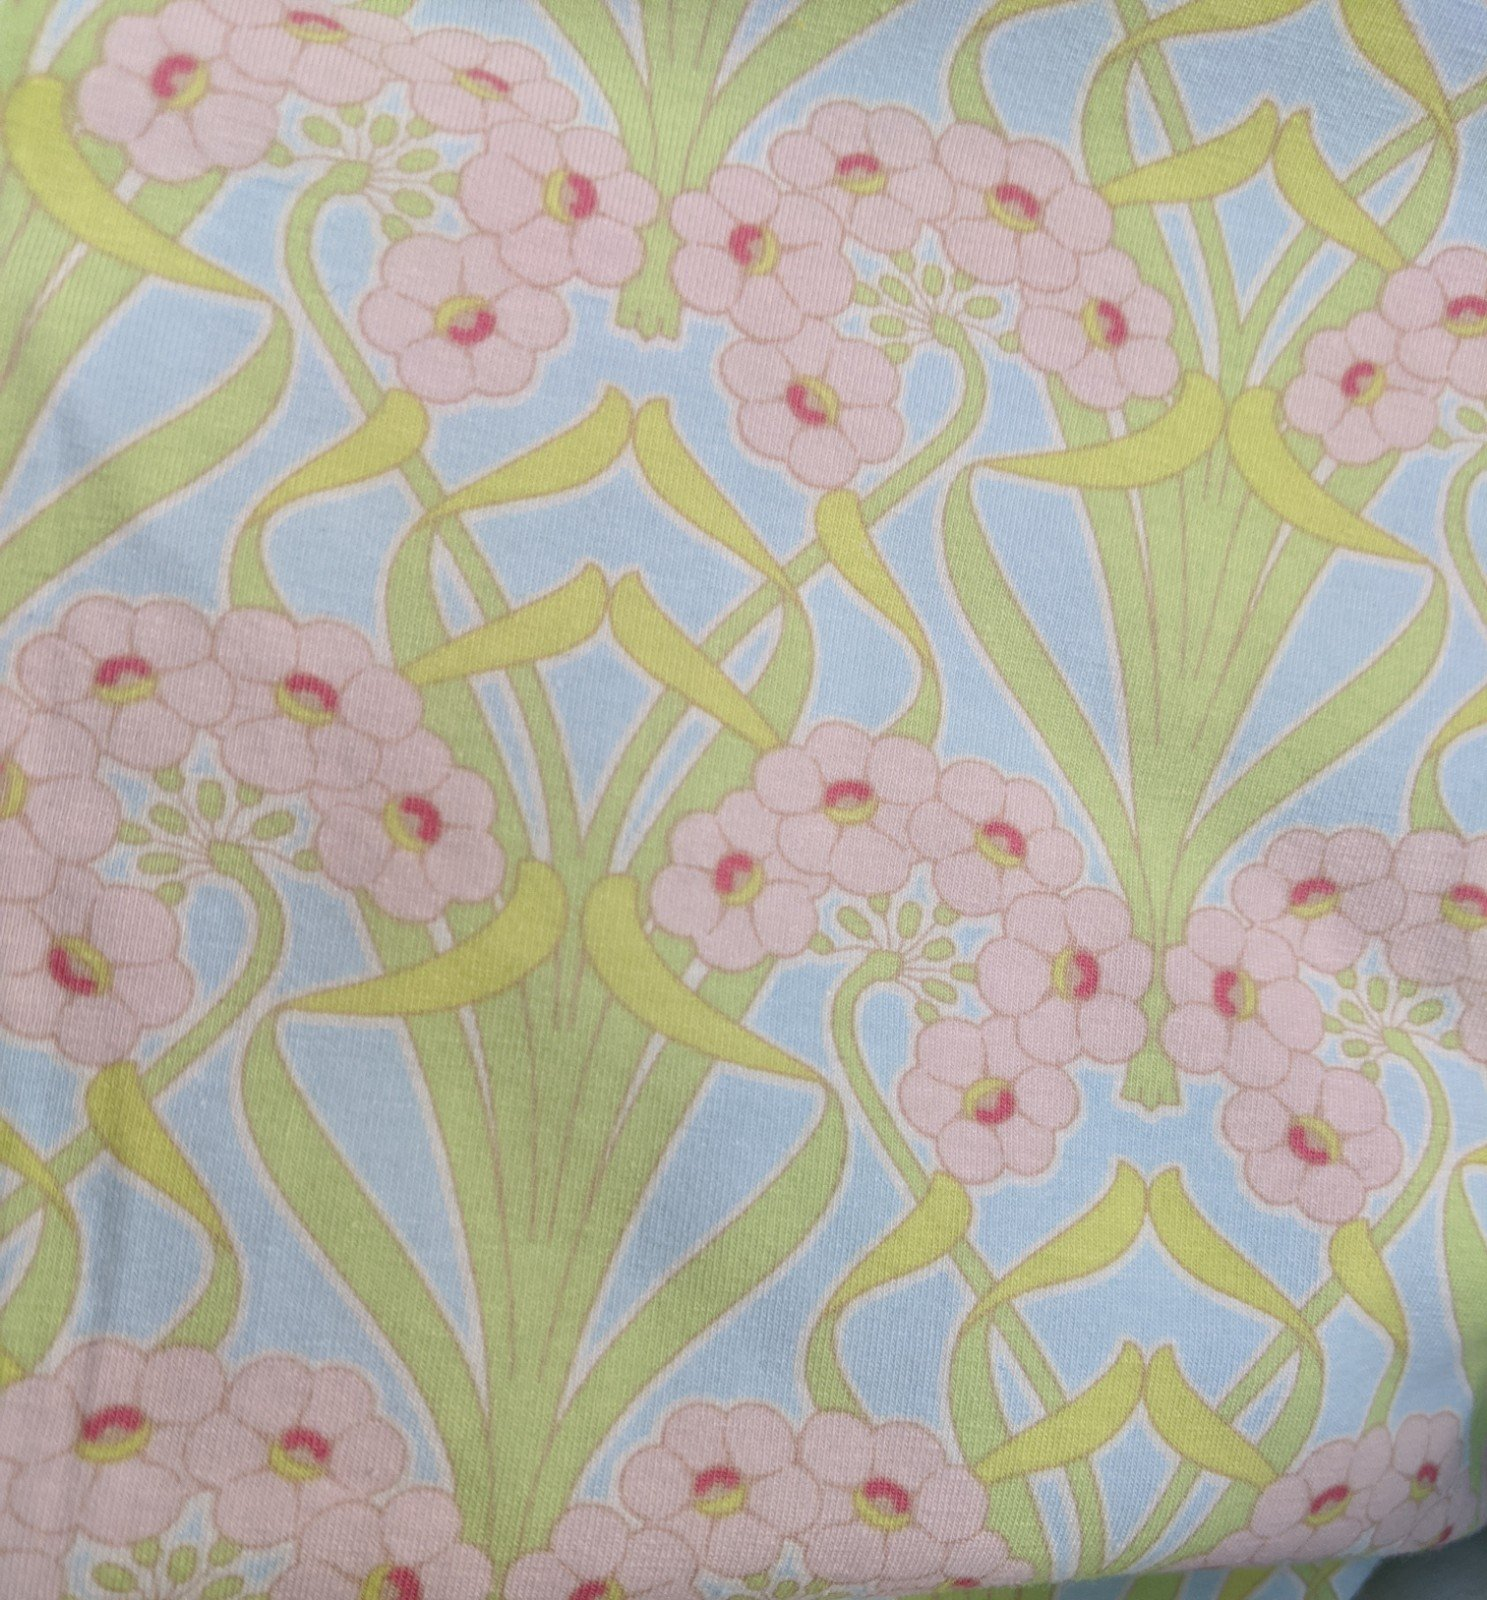 Bed Head Knits - Art Deco Floral